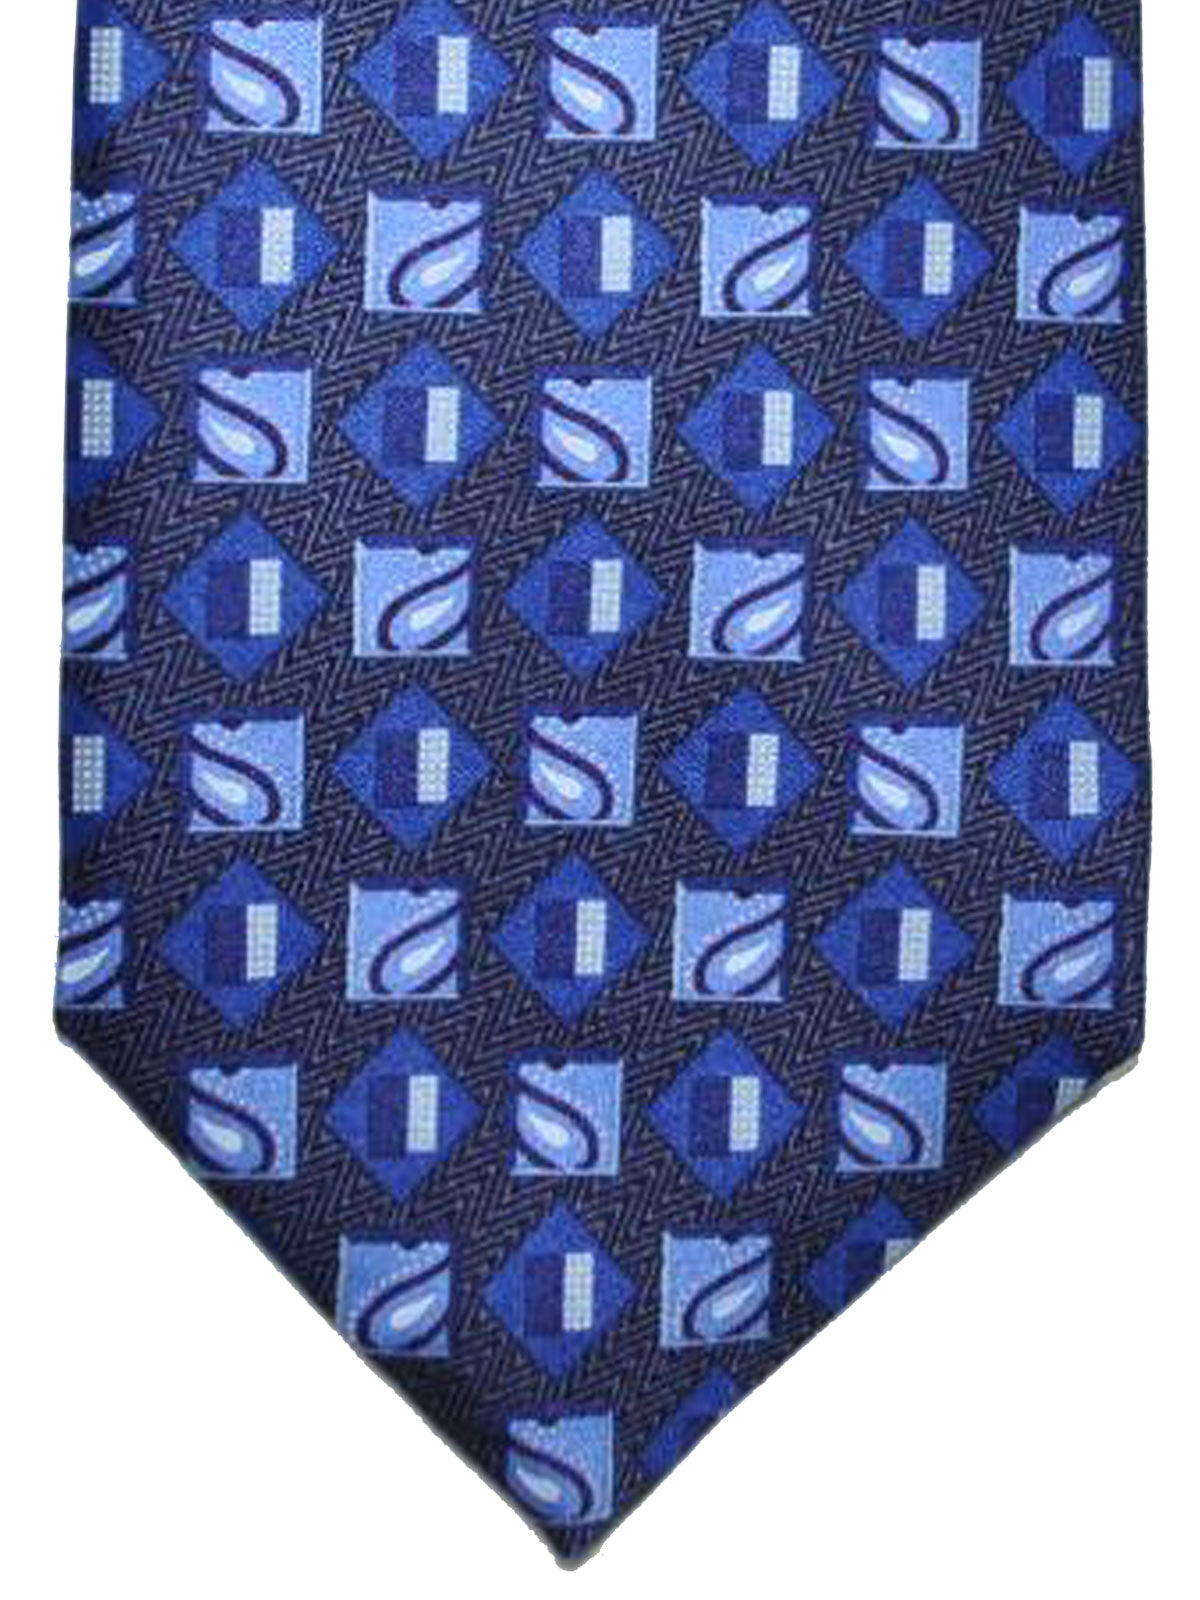 605cf63073 Ermenegildo Zegna Silk Tie Navy Royal Blue Geometric